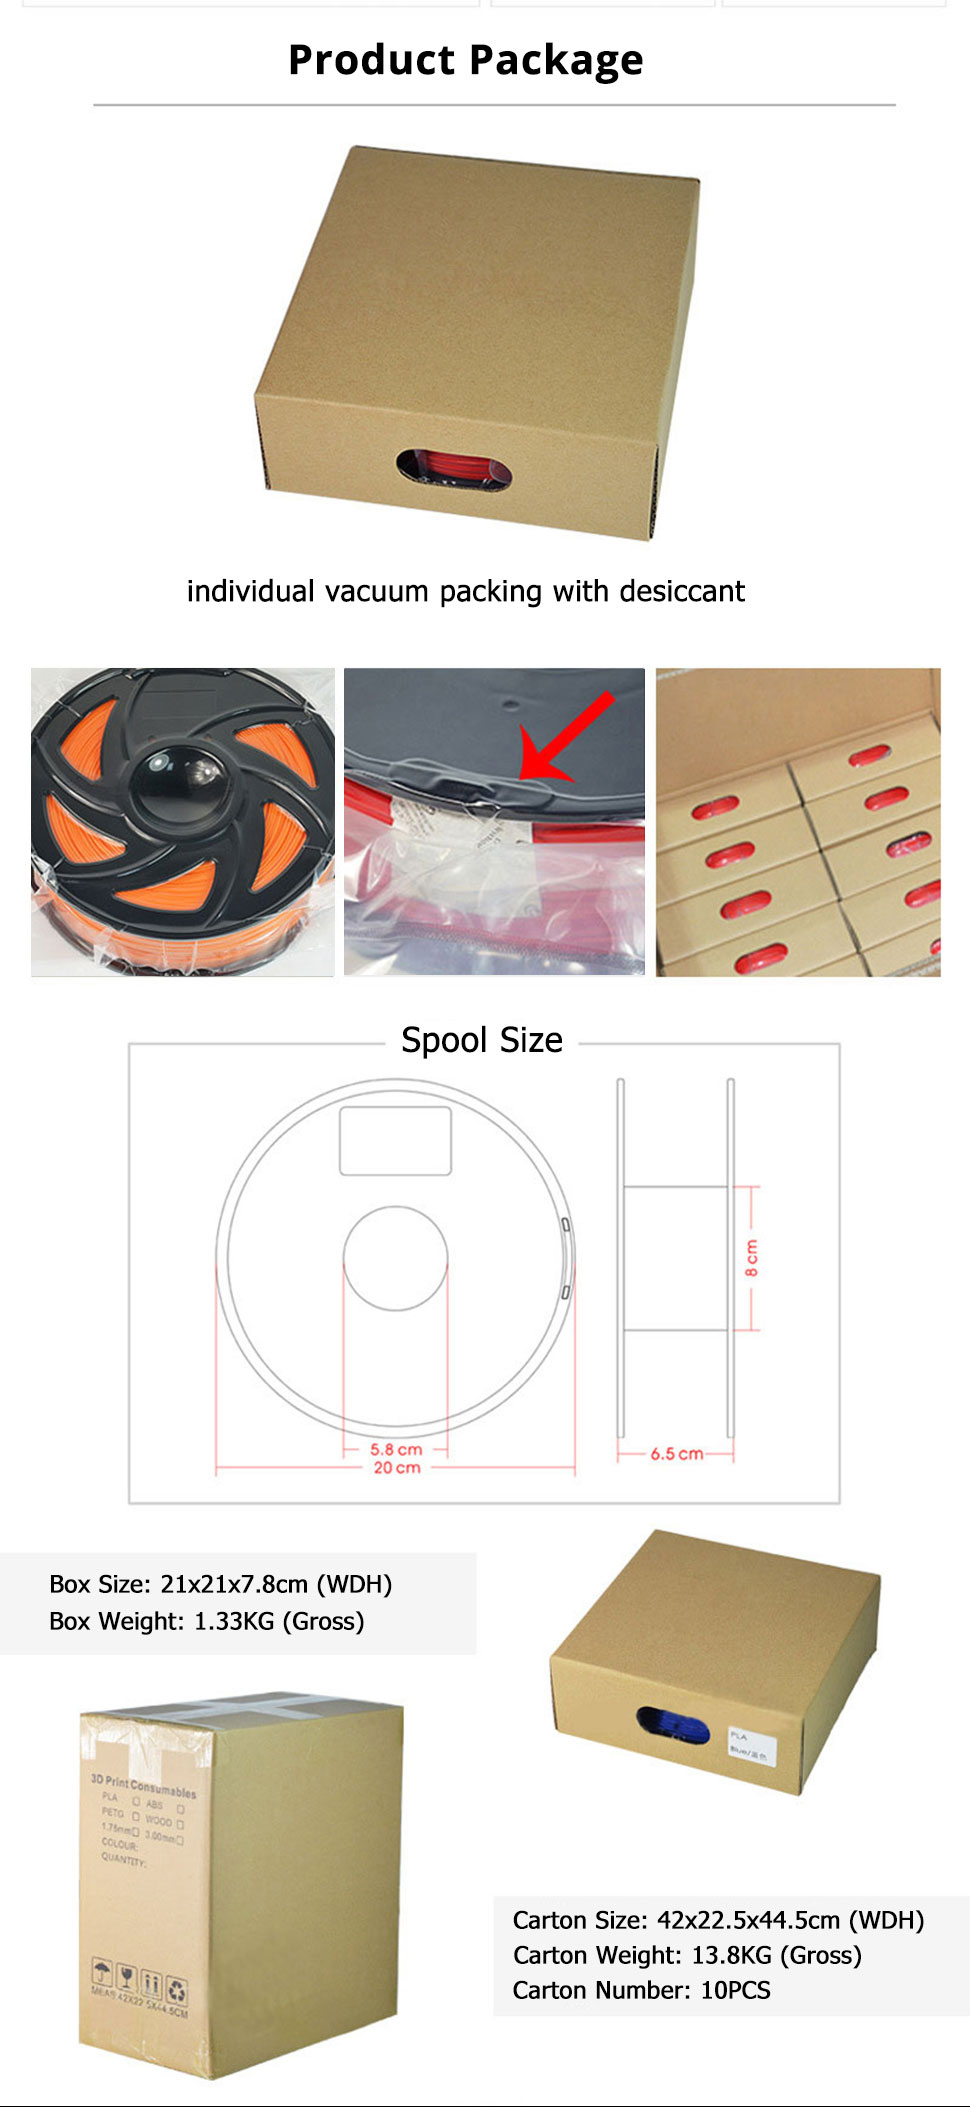 3D-Printer-Filament-Product-Package